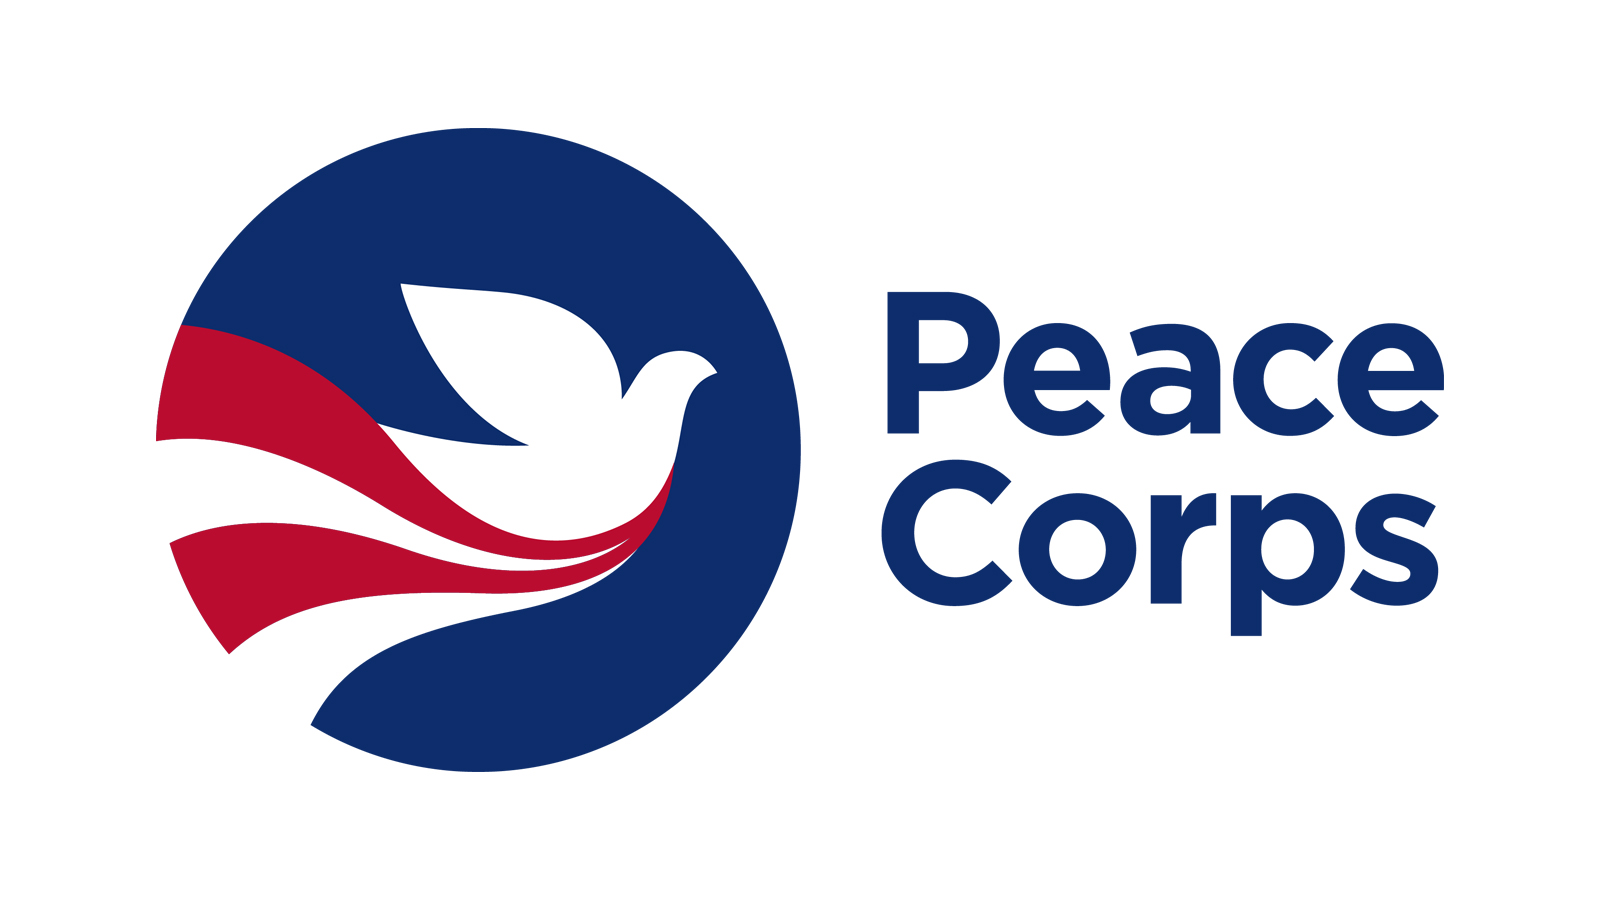 PeaceCorpsLogo-1600x900.jpg